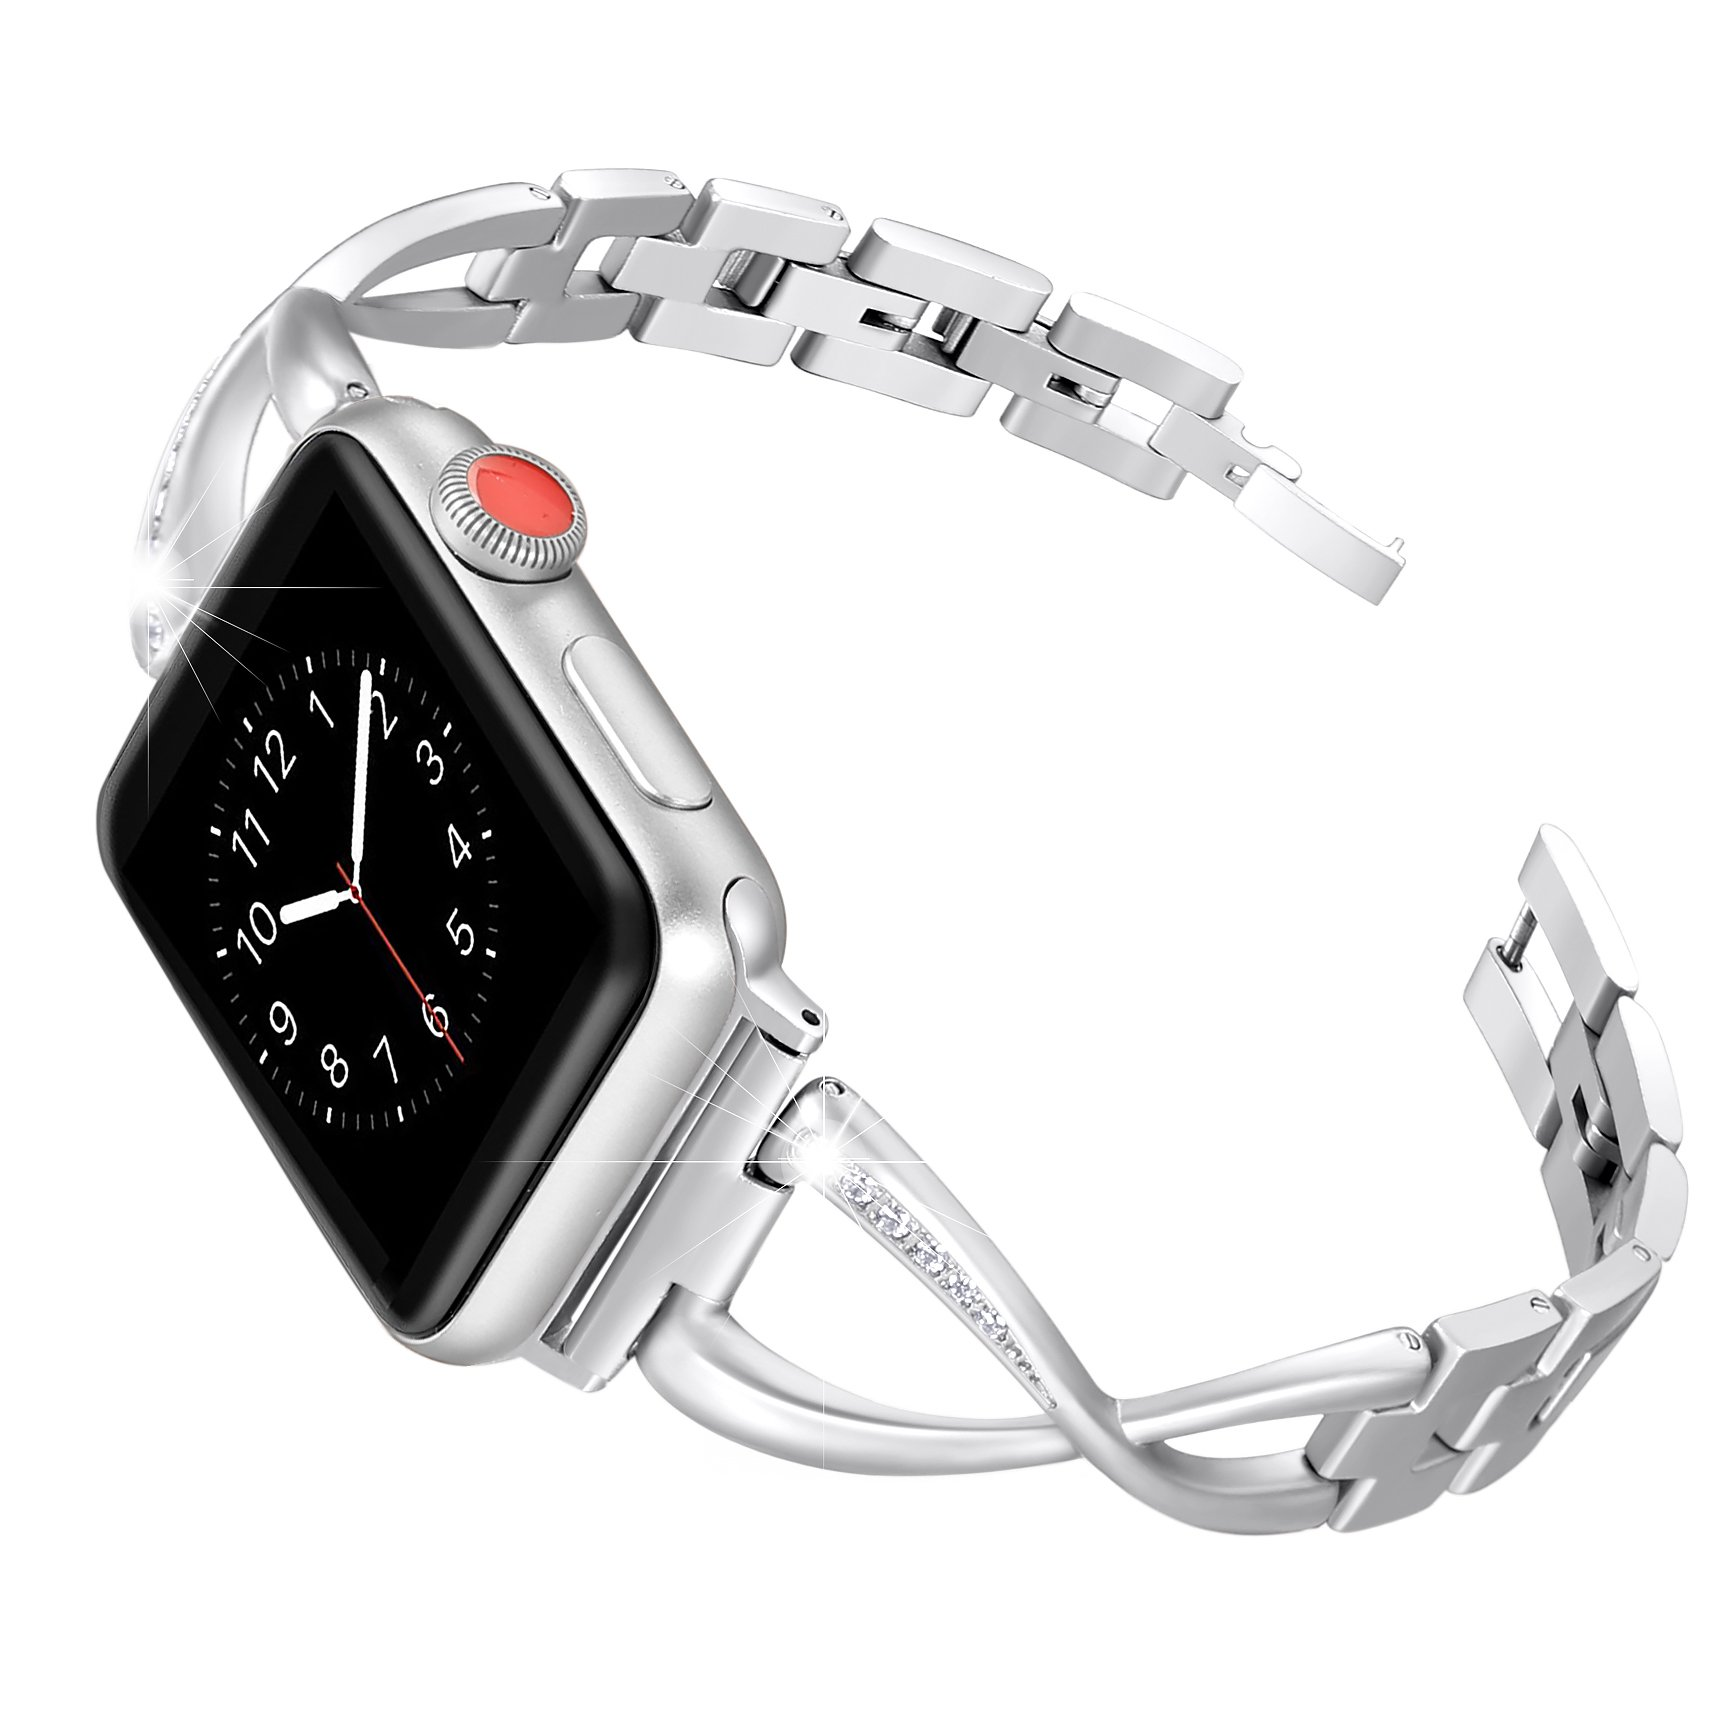 Secbolt Stainless Steel Band Compatible Apple Watch Band 38mm 40mm Women Iwatch Series 4, Series 3, Series 2 1 Accessories Metal Wristband X-Link Sport Strap, Silver by Secbolt